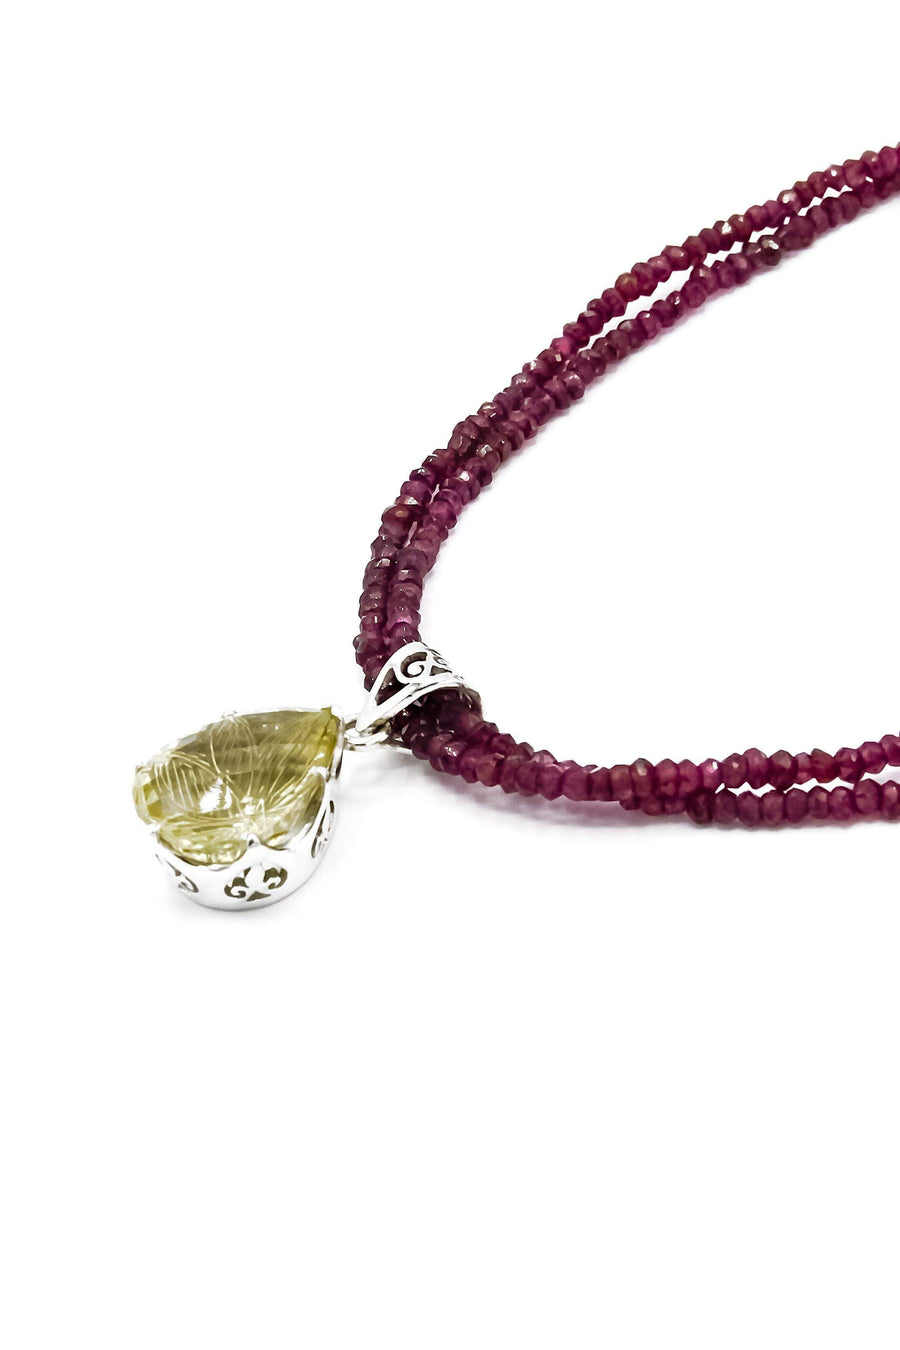 Carved Lemon Topaz on Garnet Pendant - Inaya Jewelry